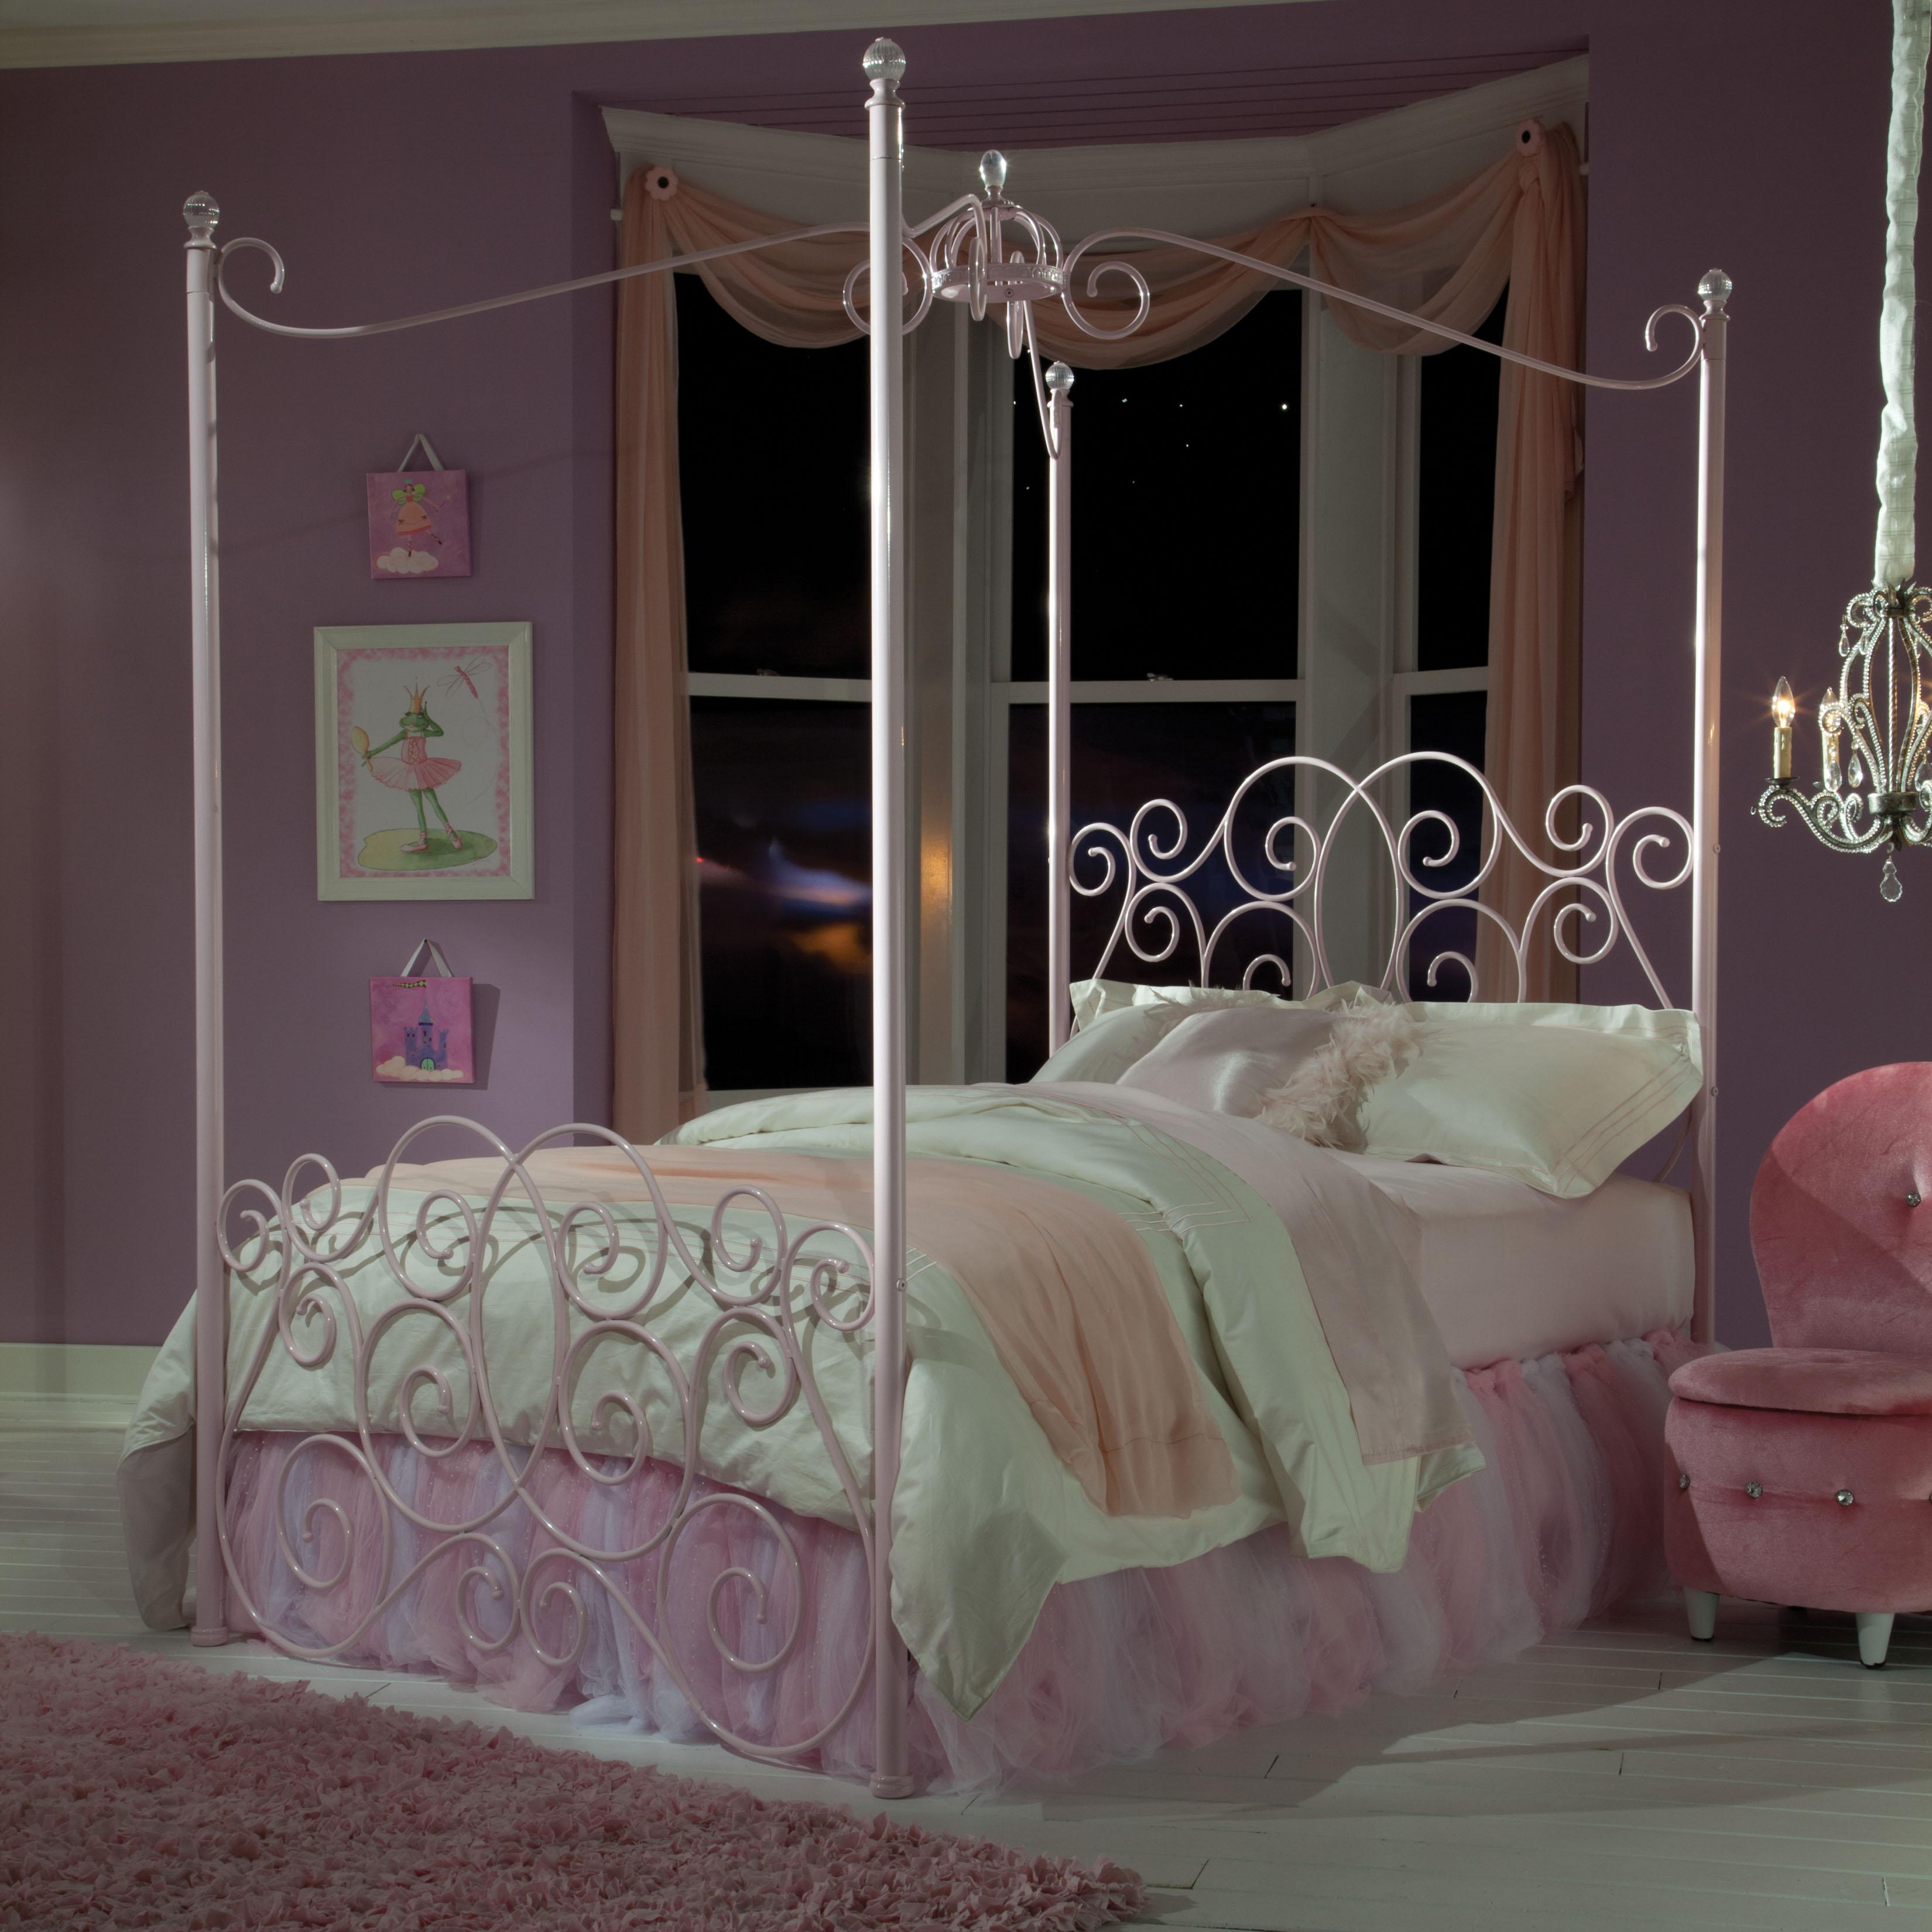 Standard Furniture Princess Canopy Beds Twin Metal Canopy Bed with Clear Post Finials | Wayside Furniture | Canopy Bed & Standard Furniture Princess Canopy Beds Twin Metal Canopy Bed with ...